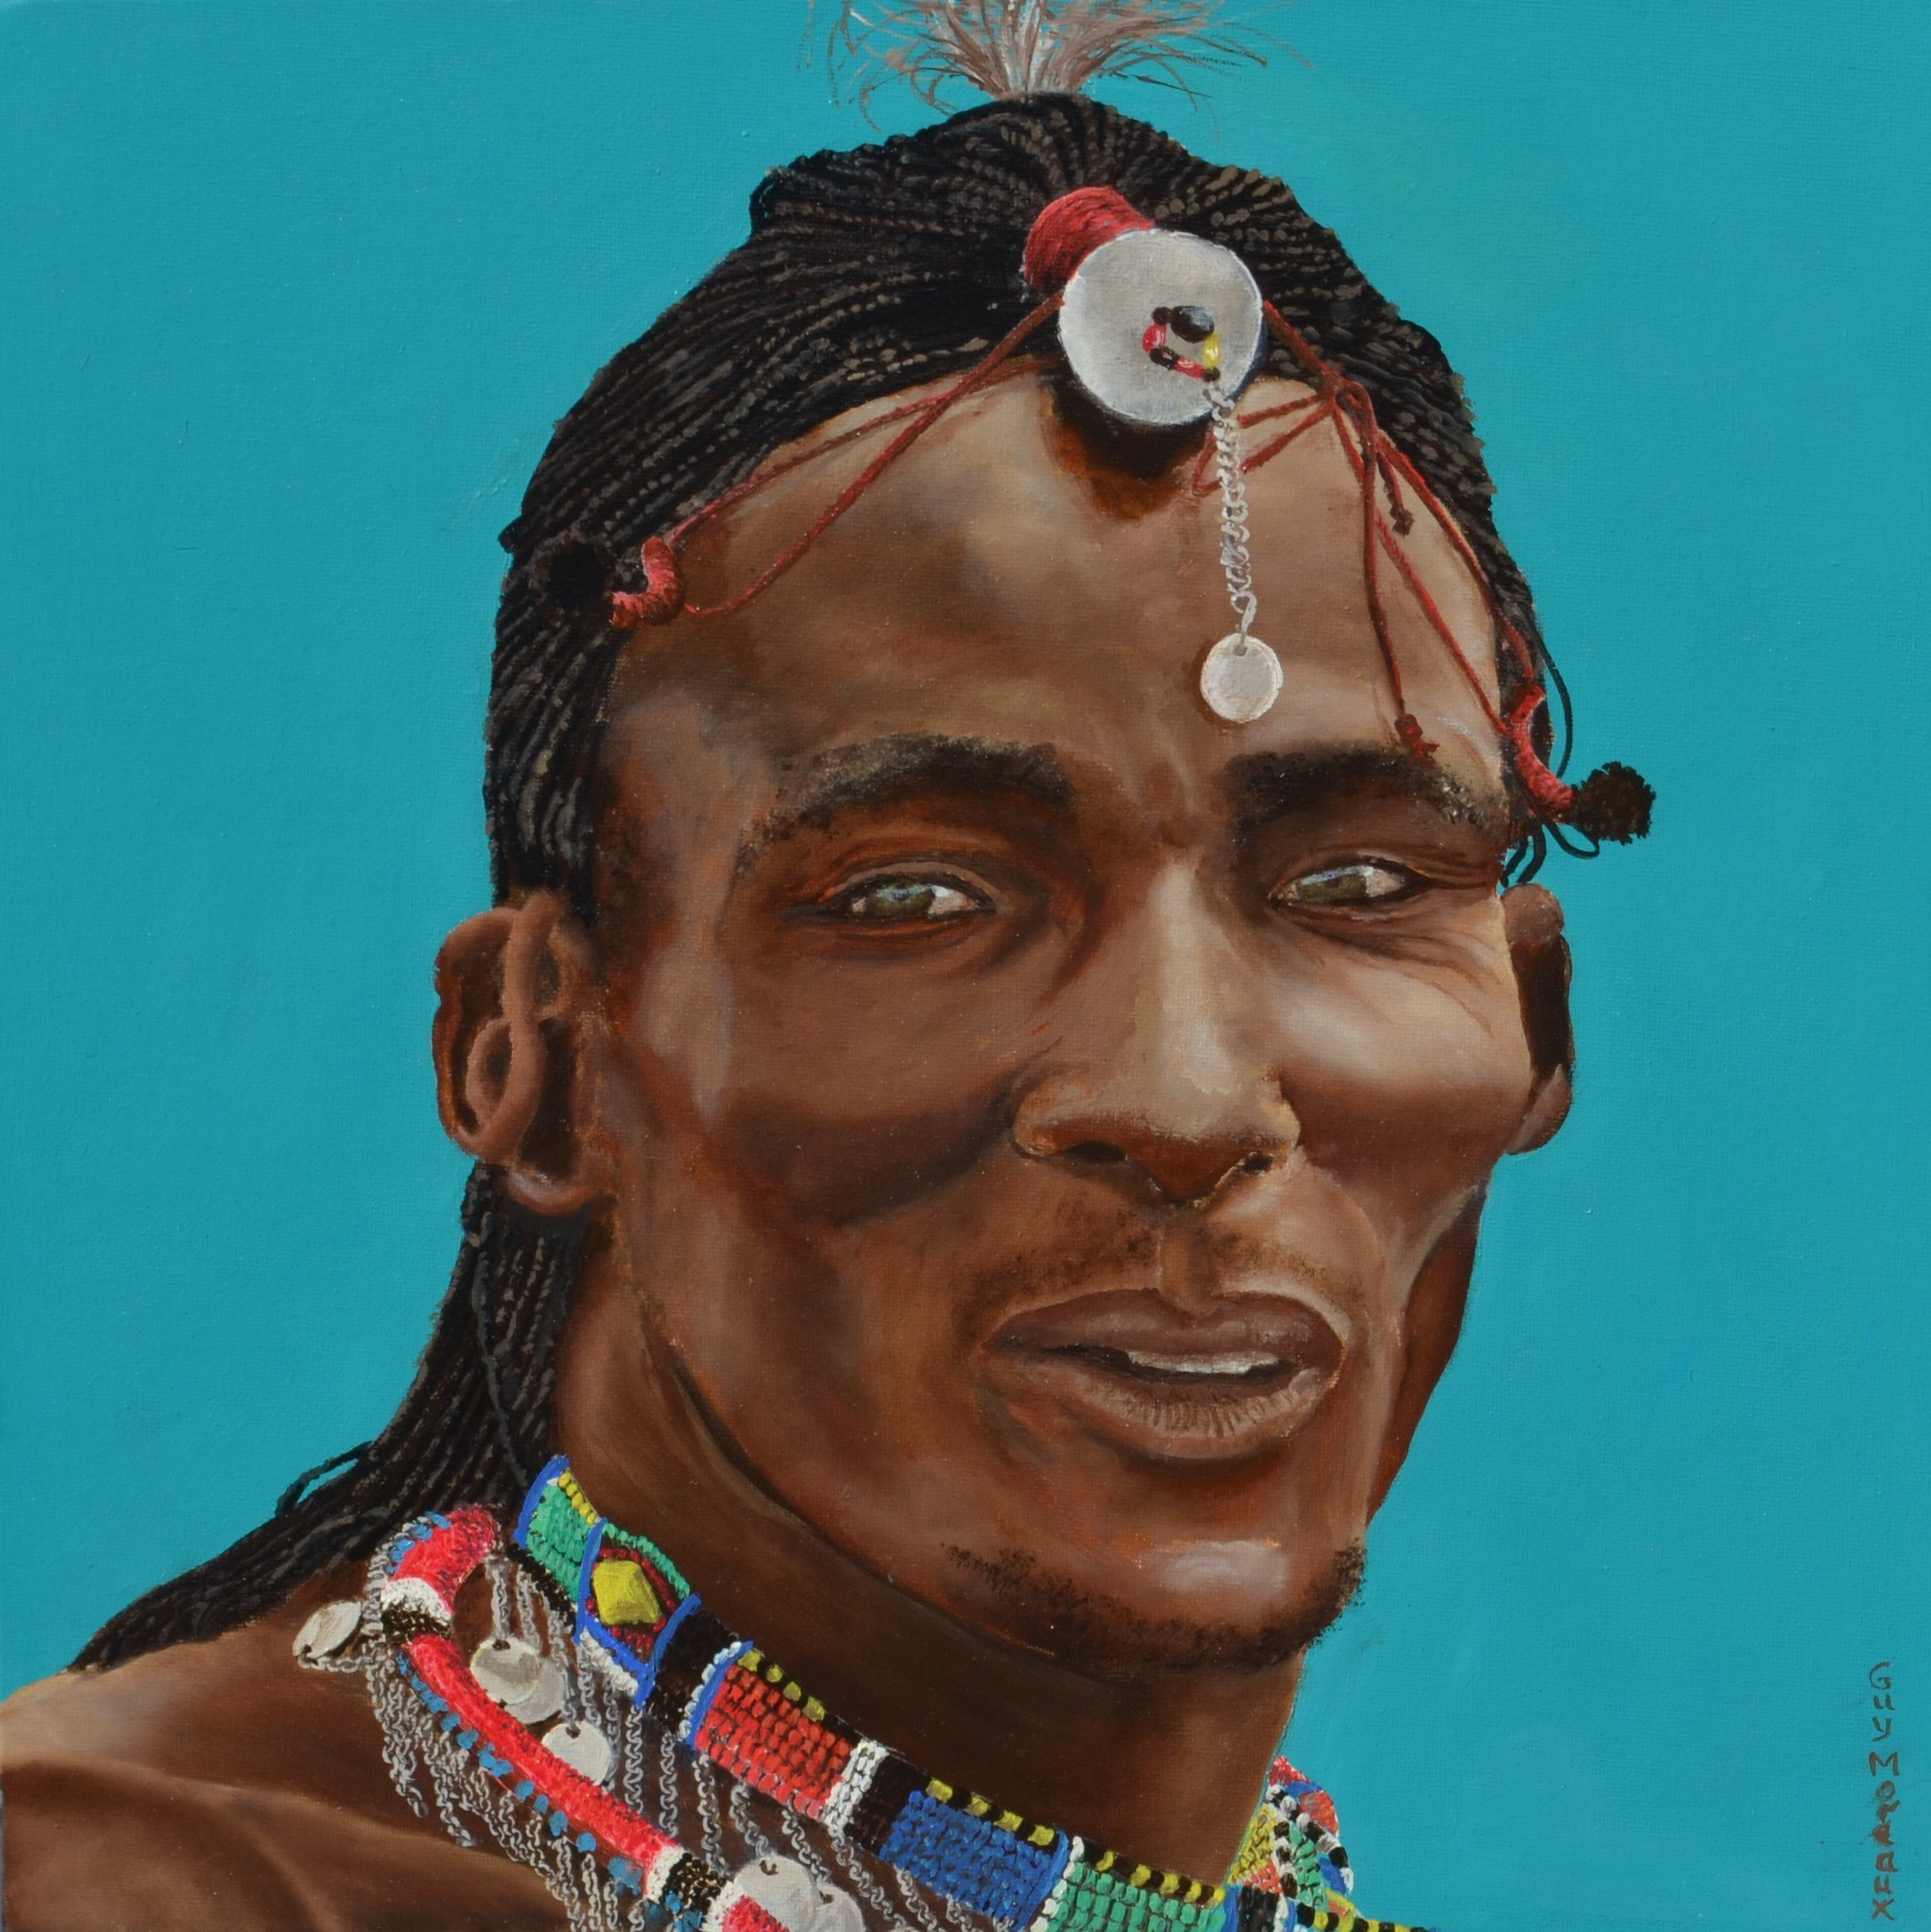 Guy Octaaf Moreaux; Masai Man 1, 2018, Original Painting Oil, 40 x 40 cm. Artwork description: 241 Oil paint on canvasboard...